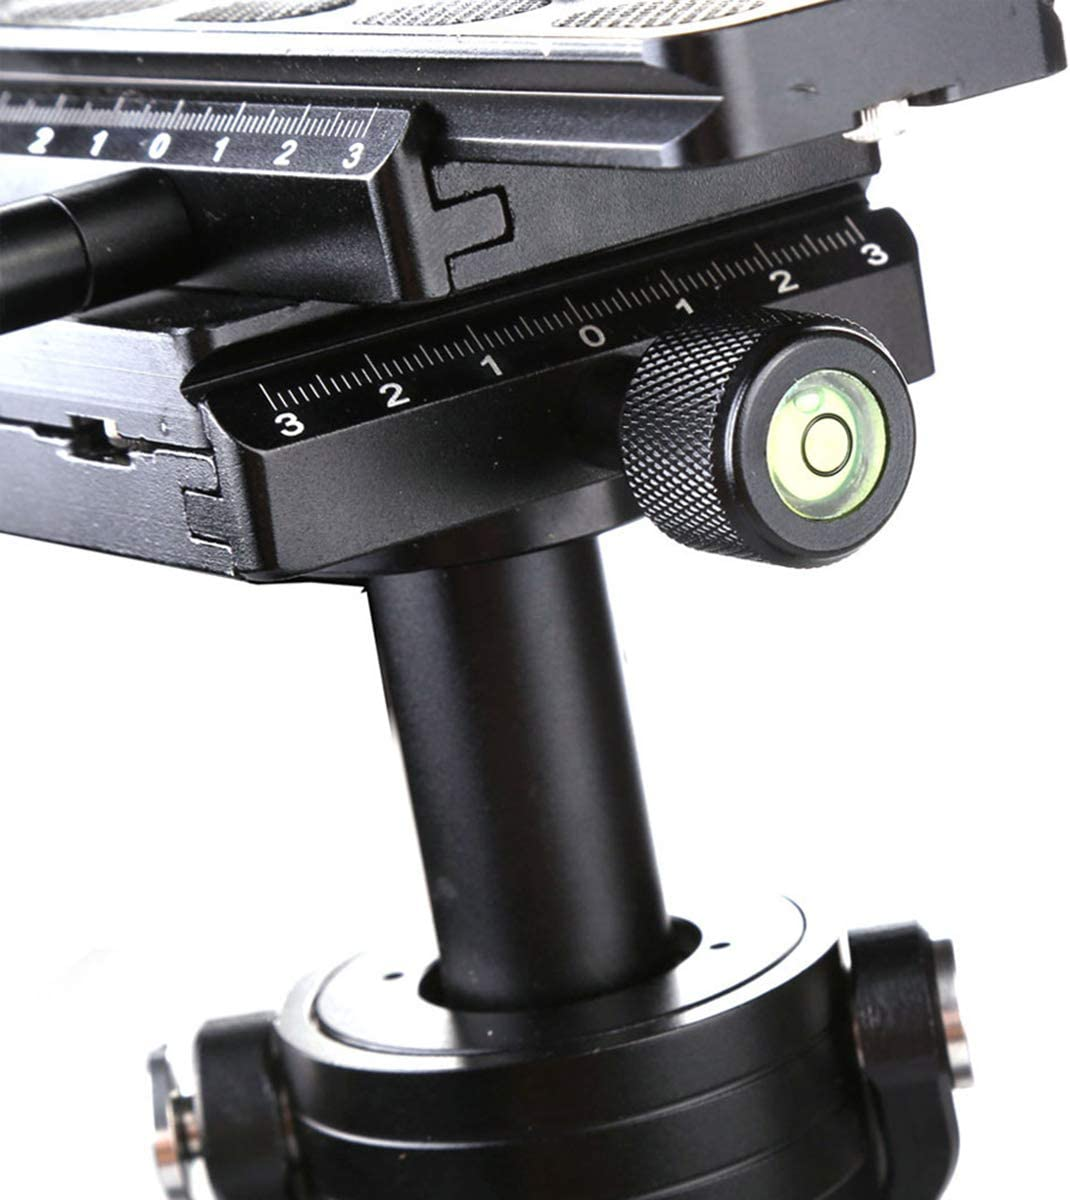 Carbon Fiber 24 Inches//60 Centimeters Handheld Stabilizer with 1//4 3//8 Inch Screw Quick Shoe Plate for Canon Nikon Sony and Other DSLR Camera Video DV Up to 6.6 Pounds//3 Kilograms Black